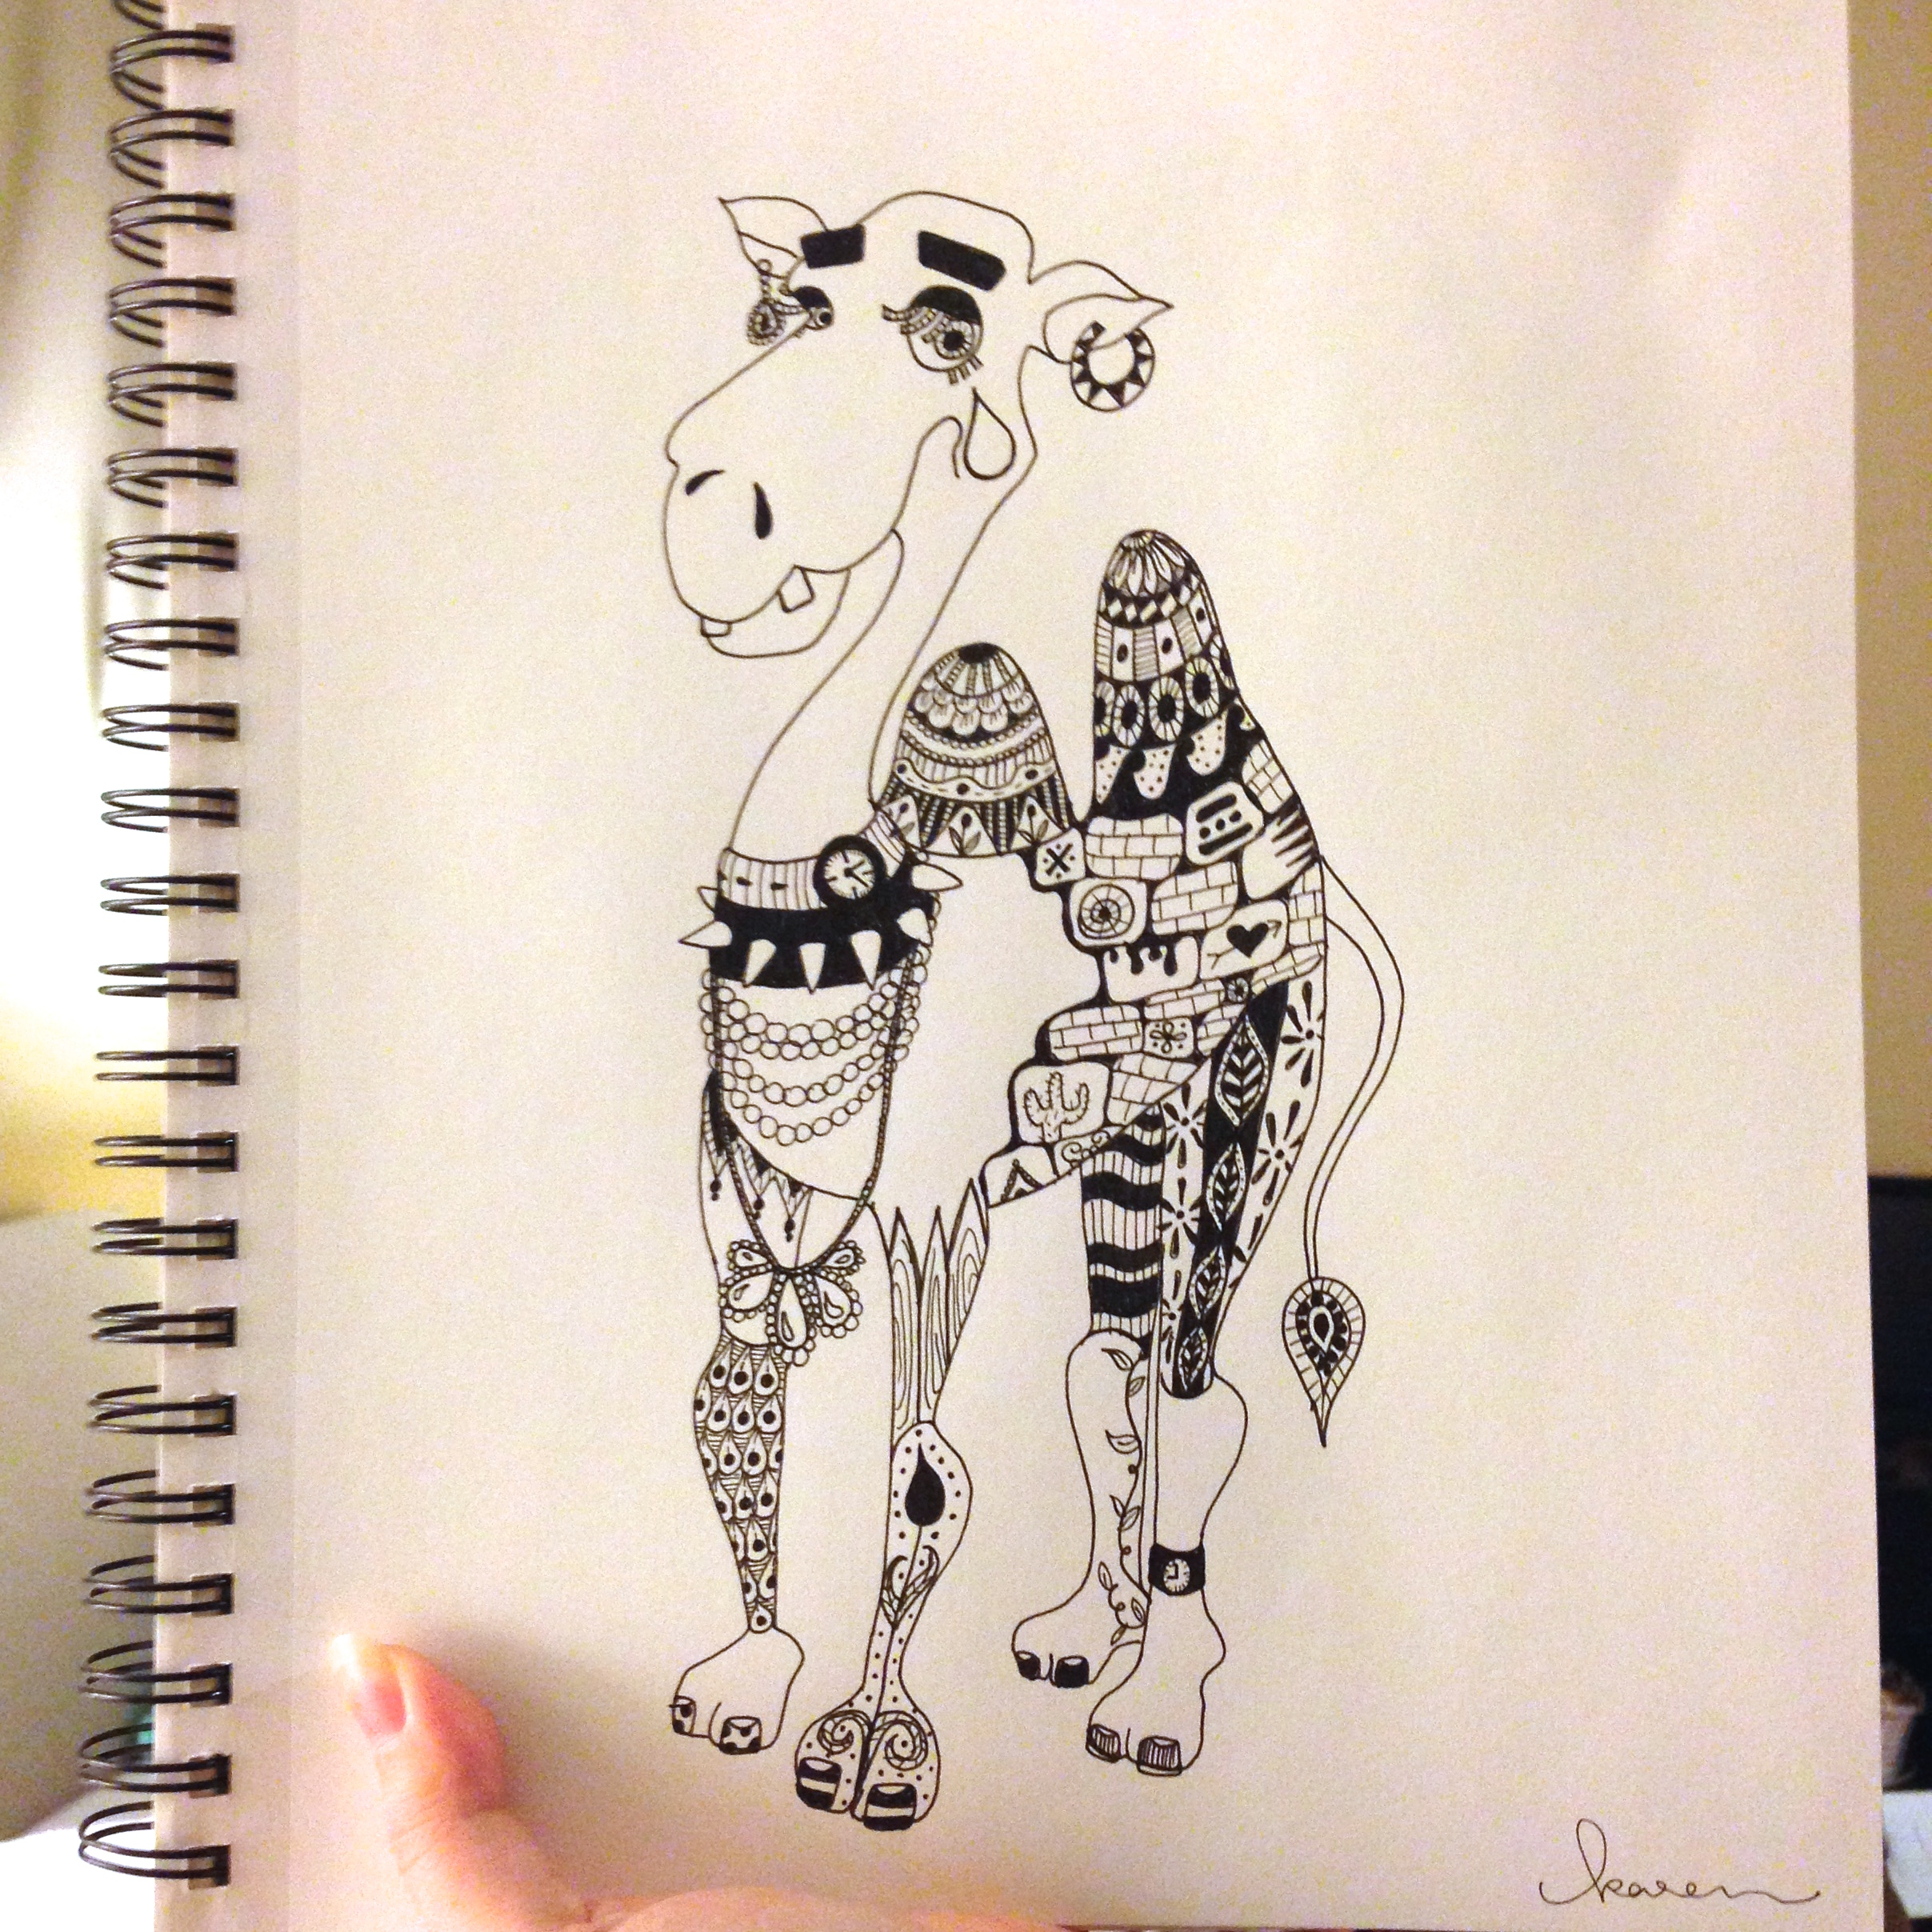 Camille the Capricious Camel